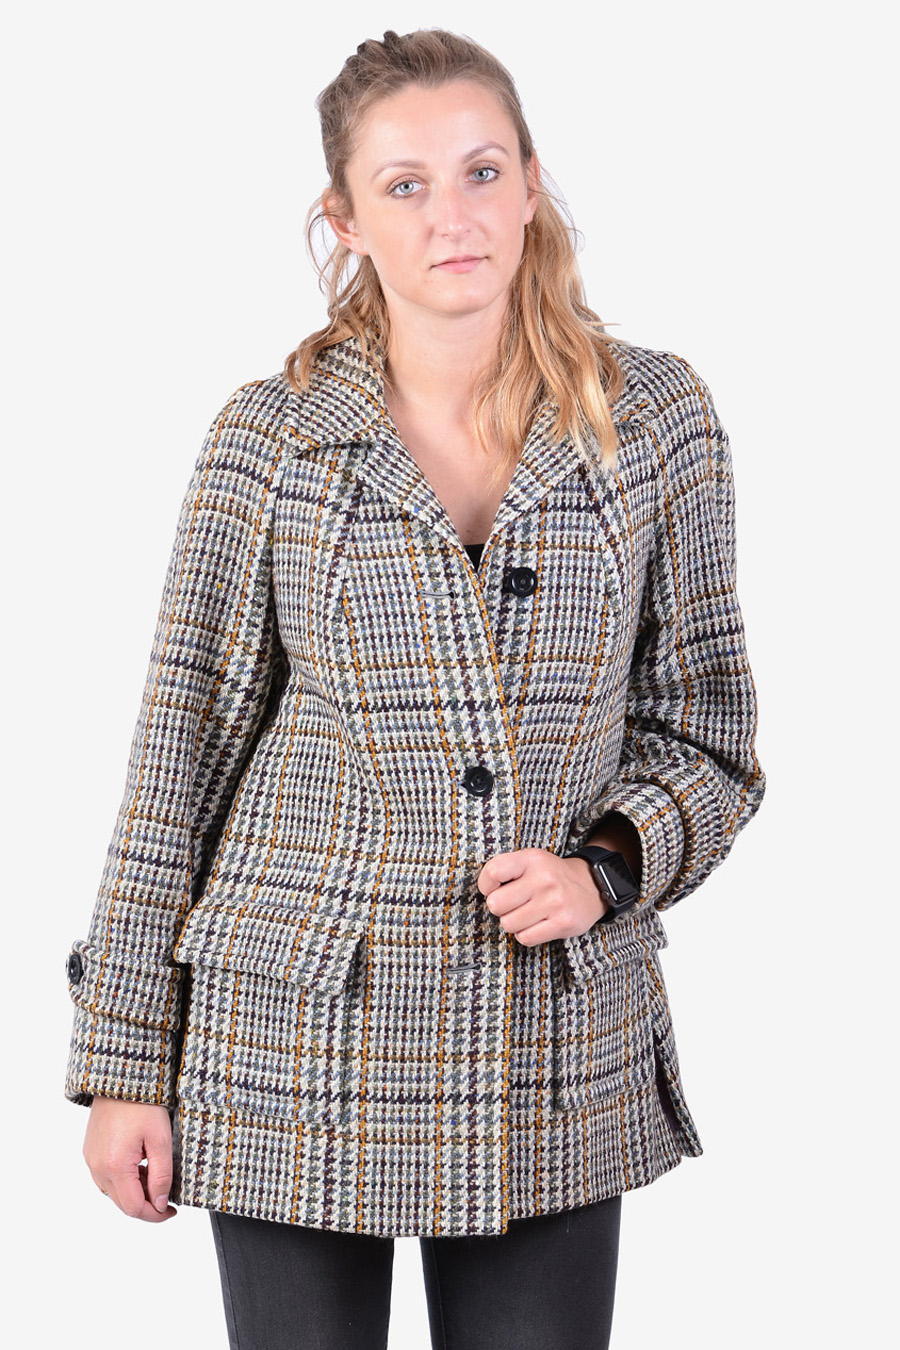 Vintage women's tweed coat